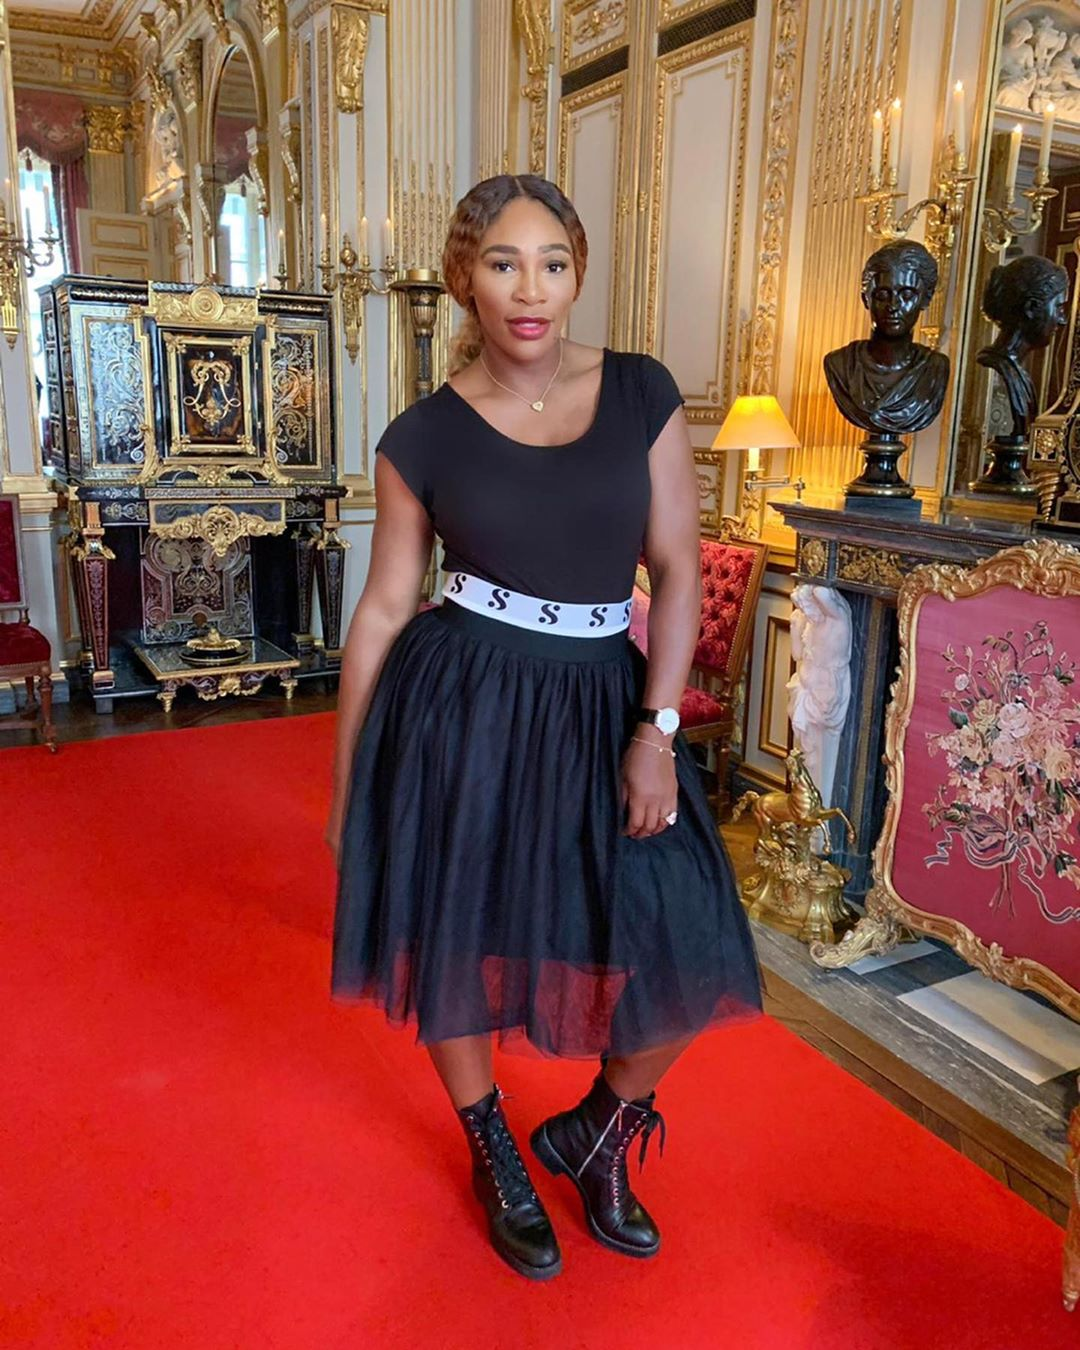 Serena Williams Visit To See Royal Baby Archie Mountbatten-Windsor (2)